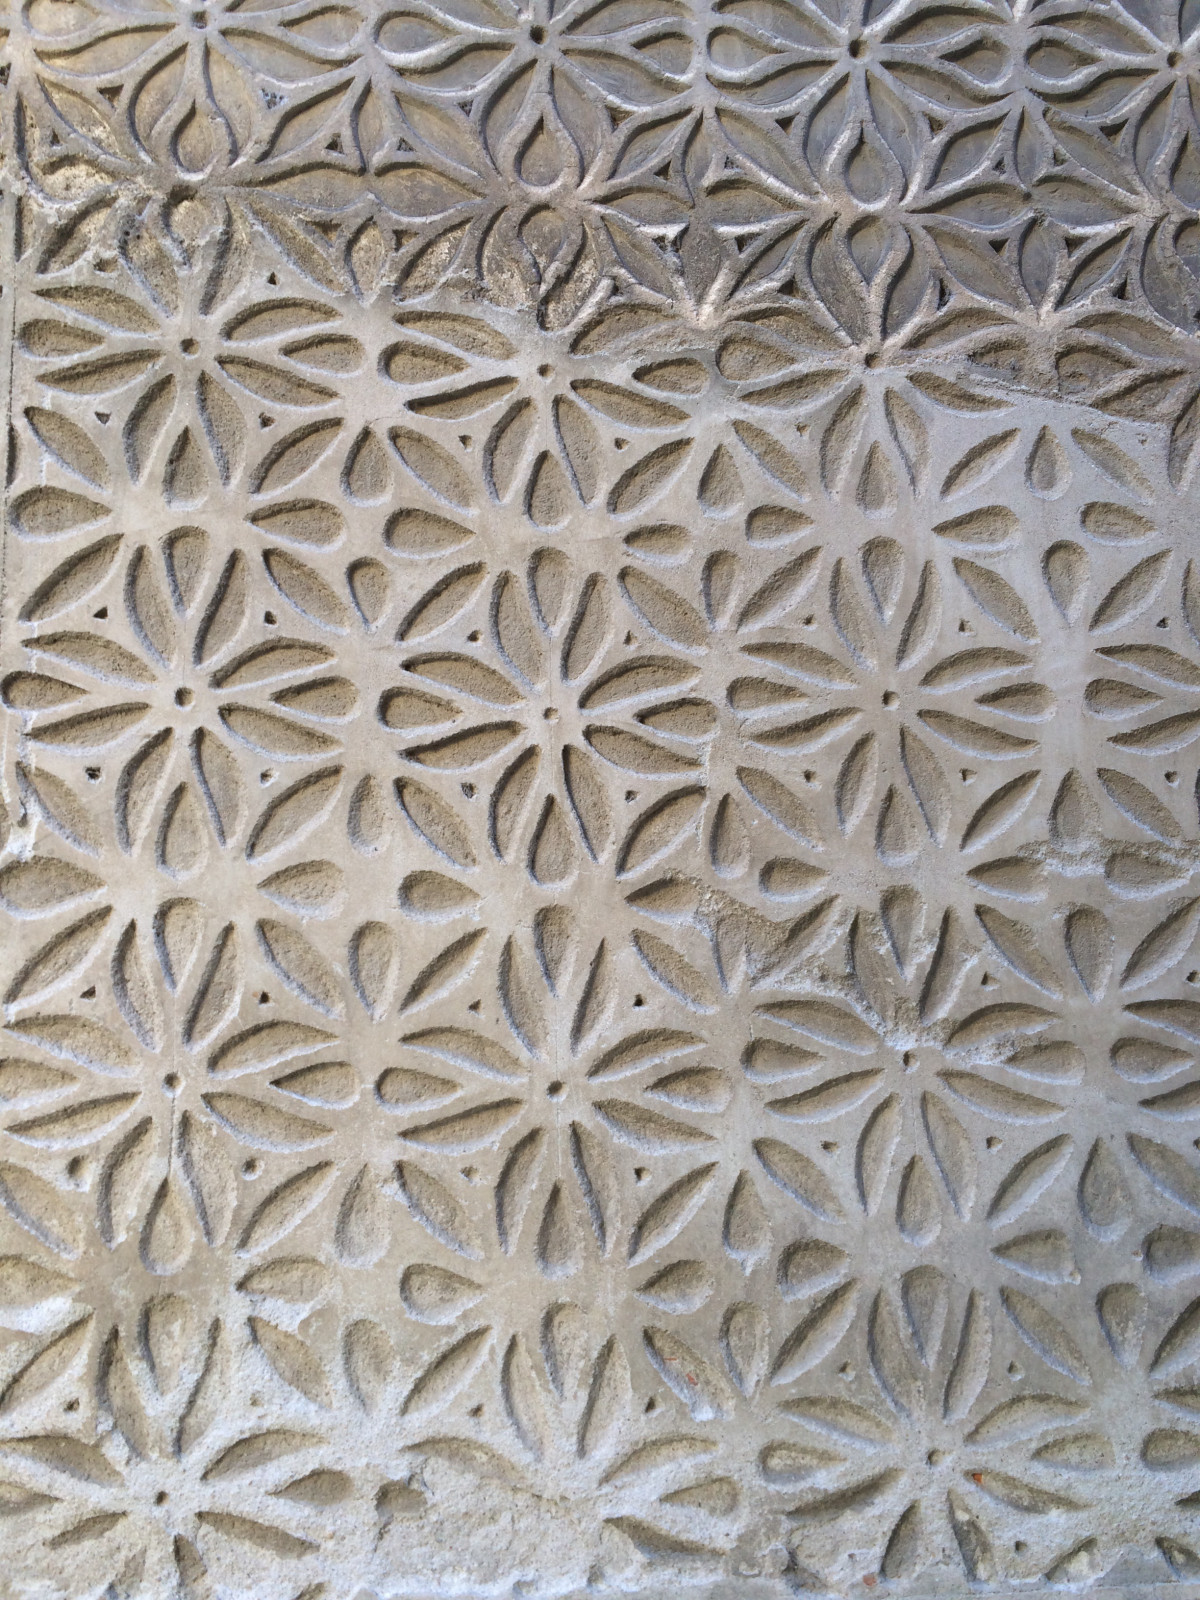 New 3d Wallpaper Free Download Free Images Texture Floor Wall Lace Brown Material